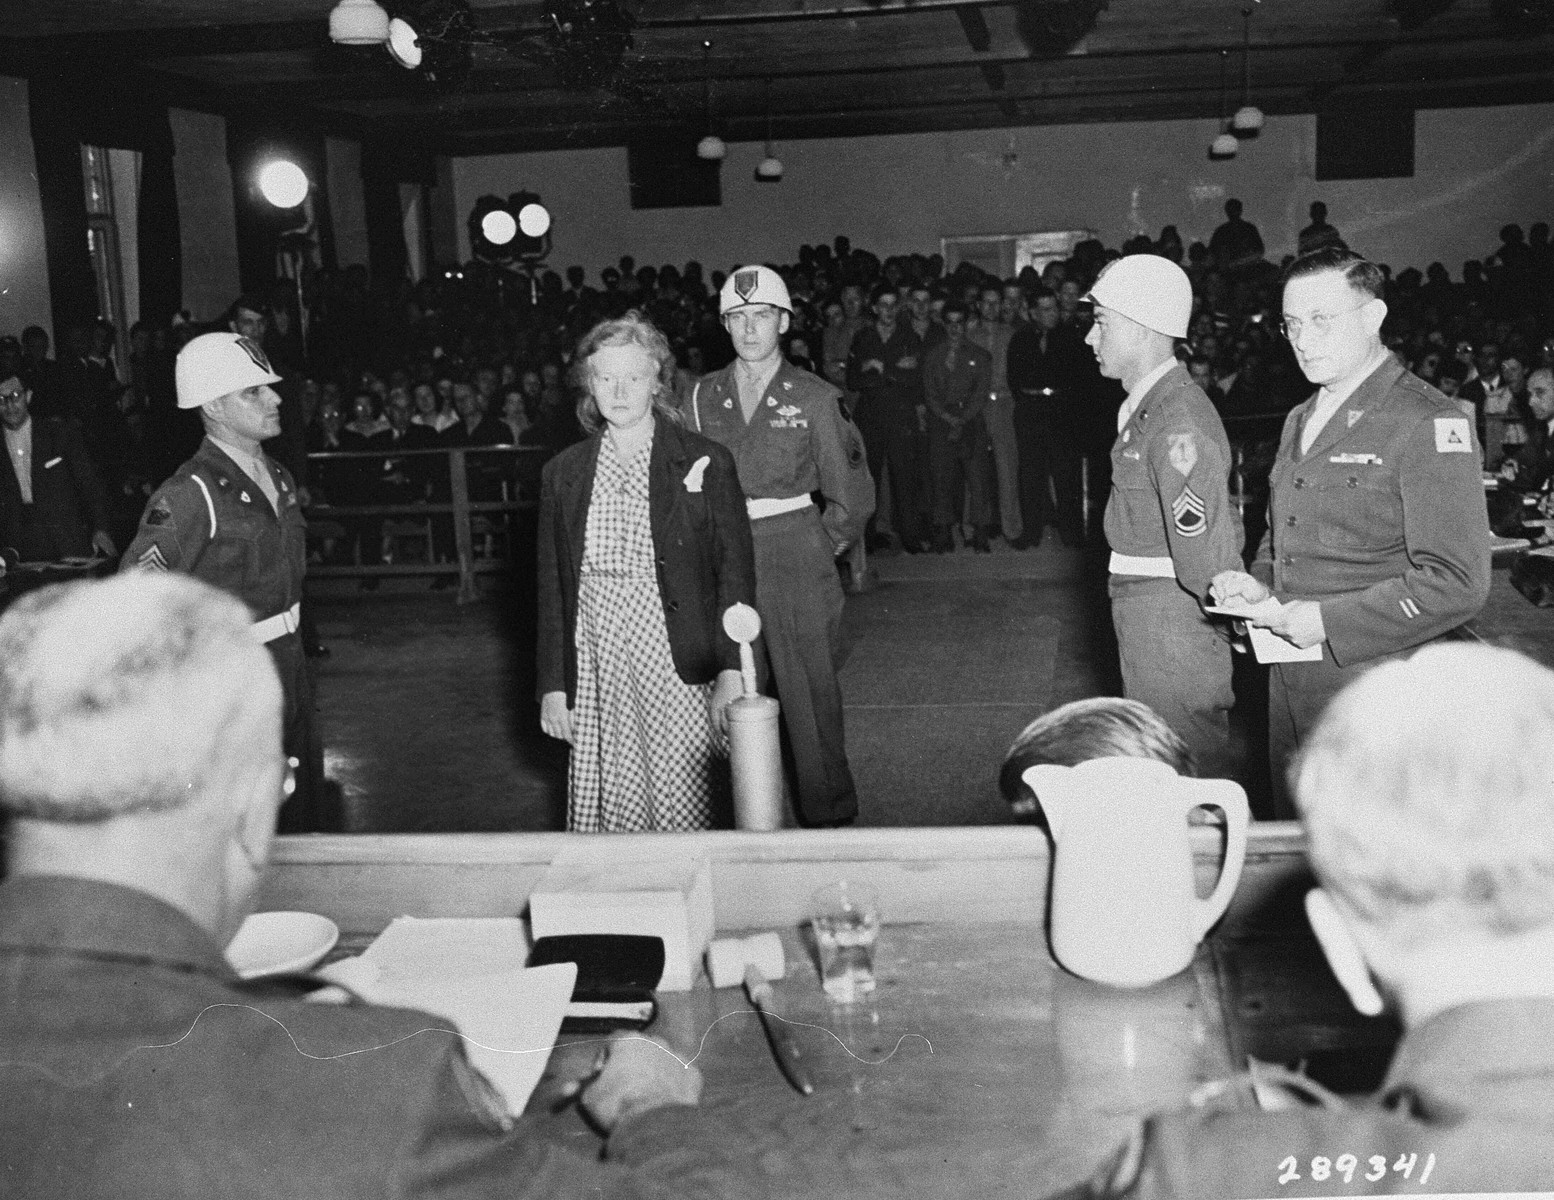 Ilse Koch is sentenced to life in prison by Brigadier General Emil C. Kiel (back to camera) at the trial of former camp personnel and prisoners from Buchenwald.